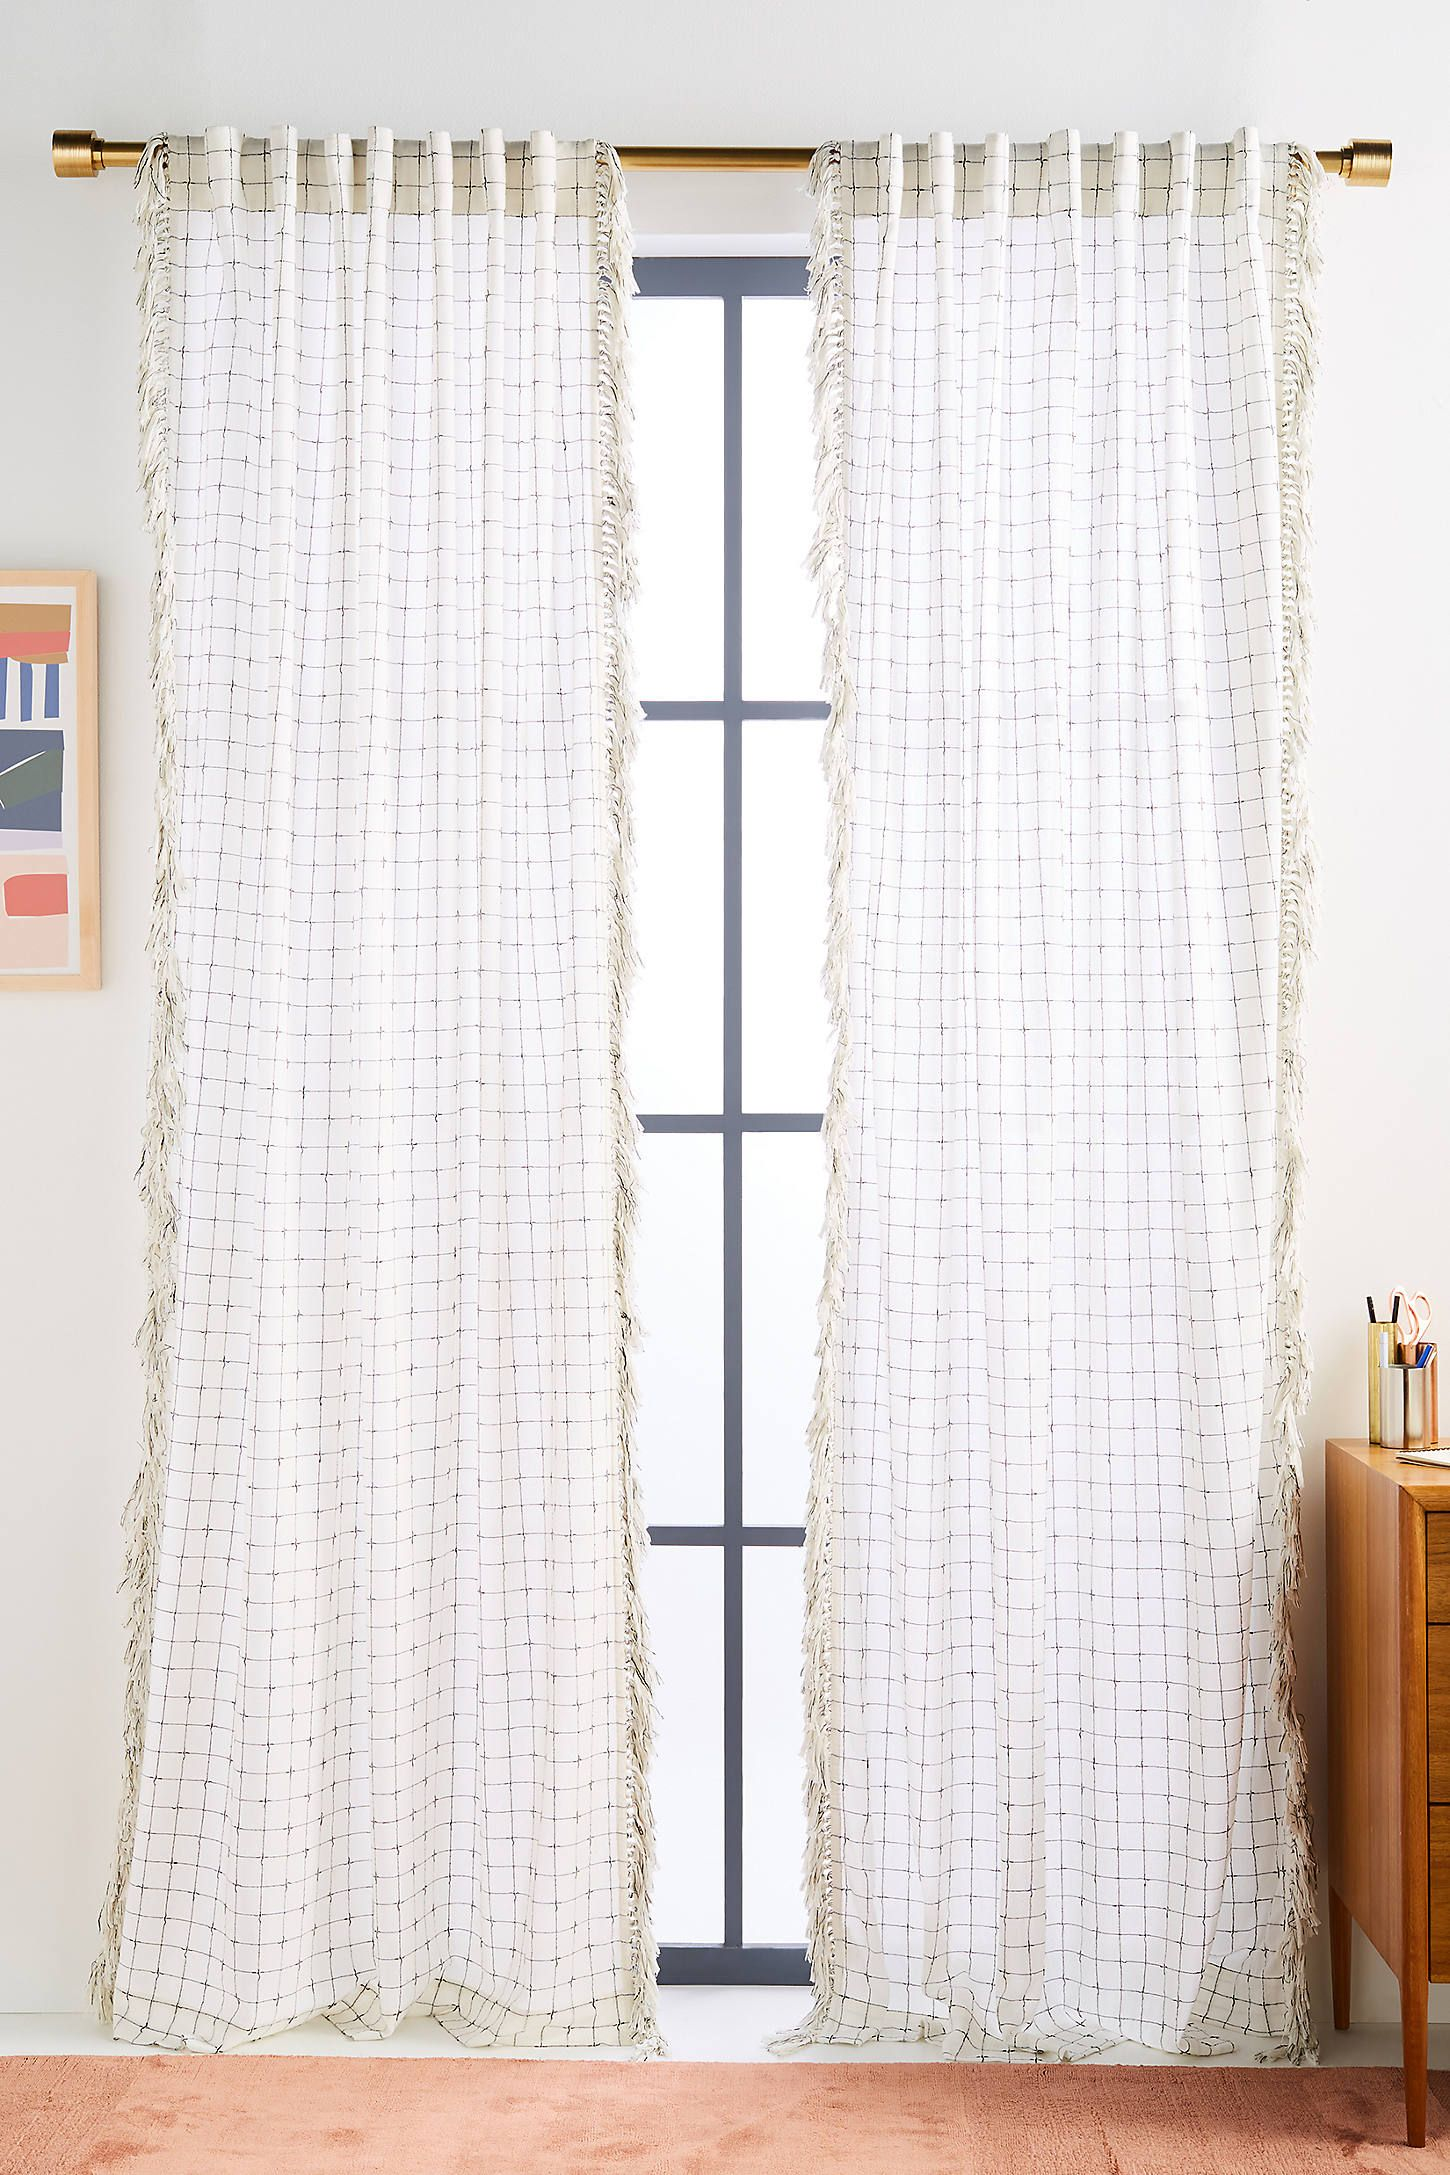 Fringed Ilana Curtain by Anthropologie in Black, Curtains #curtainfringe